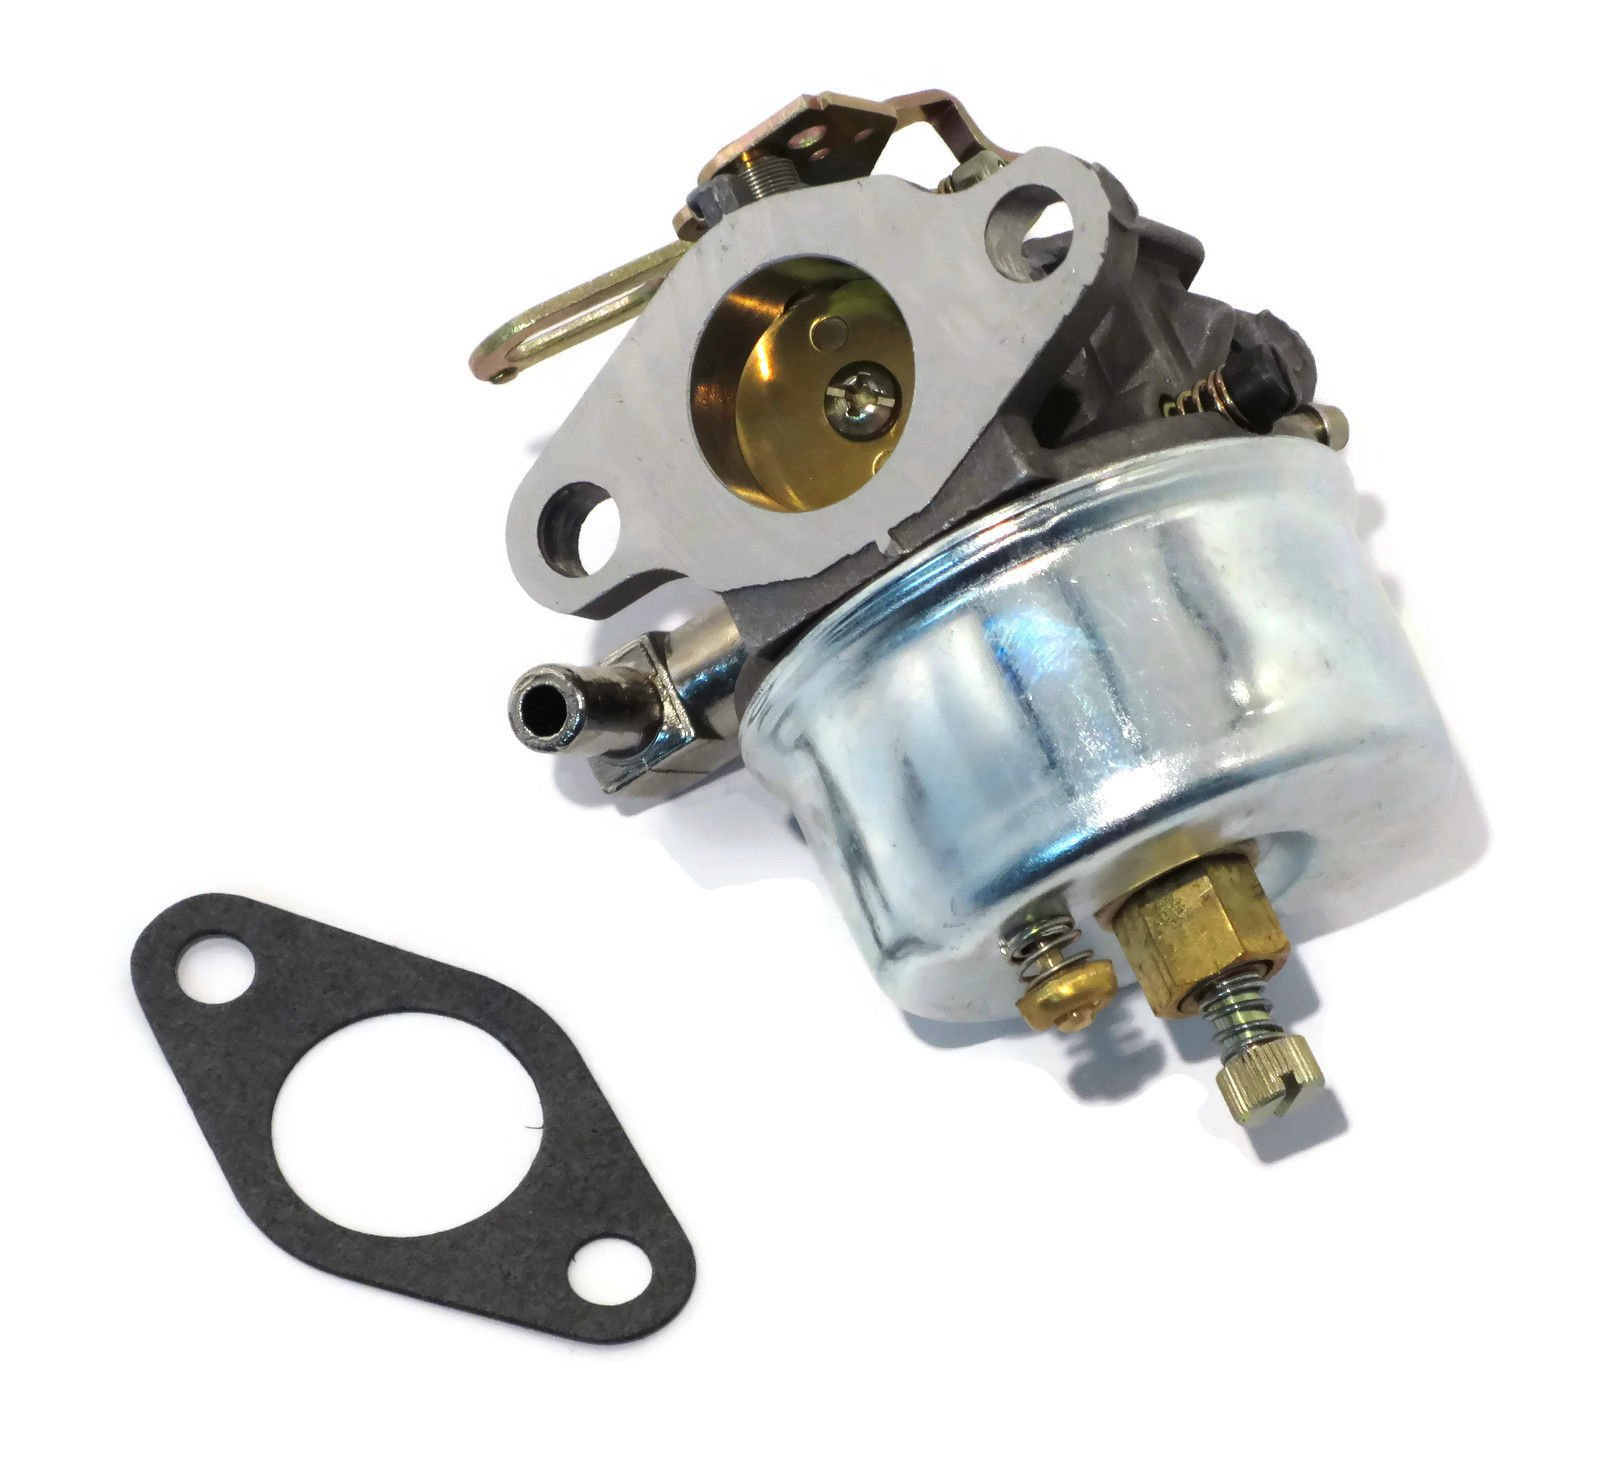 The ROP Shop Carburetor Carb for Tecumseh Stens 056-326, 520-962 Snowblower Snow Blower Motor by The ROP Shop